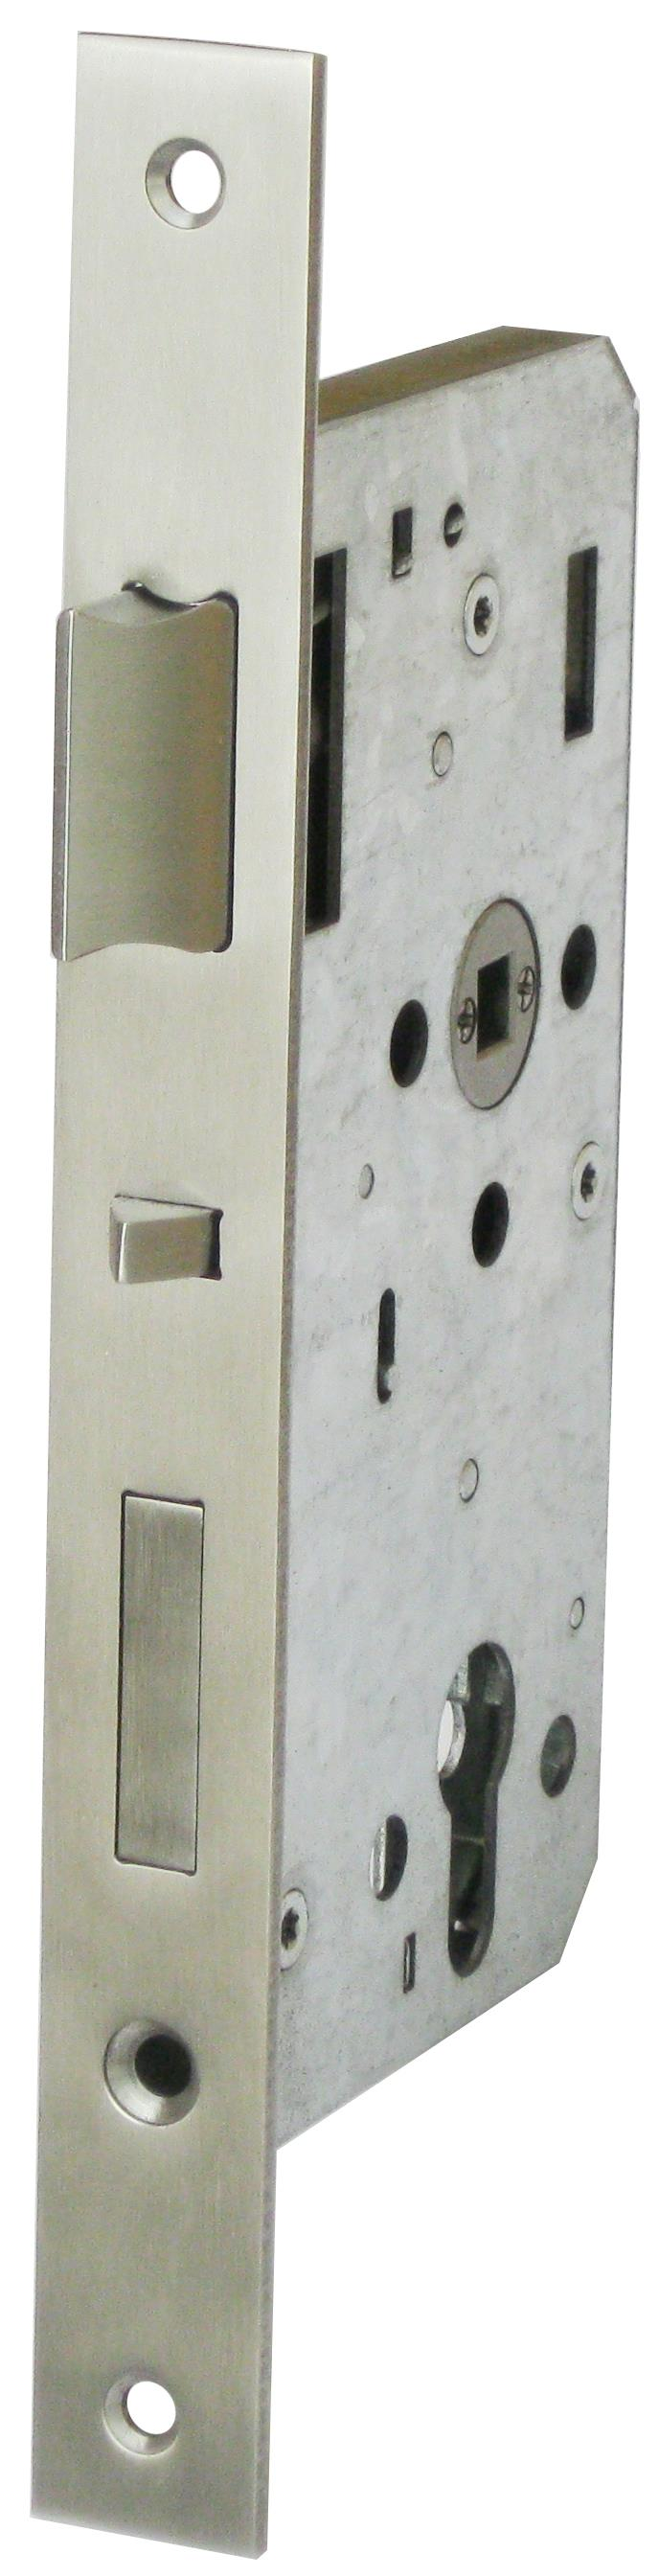 906PT - Mortice Deadlocking Escape Lock